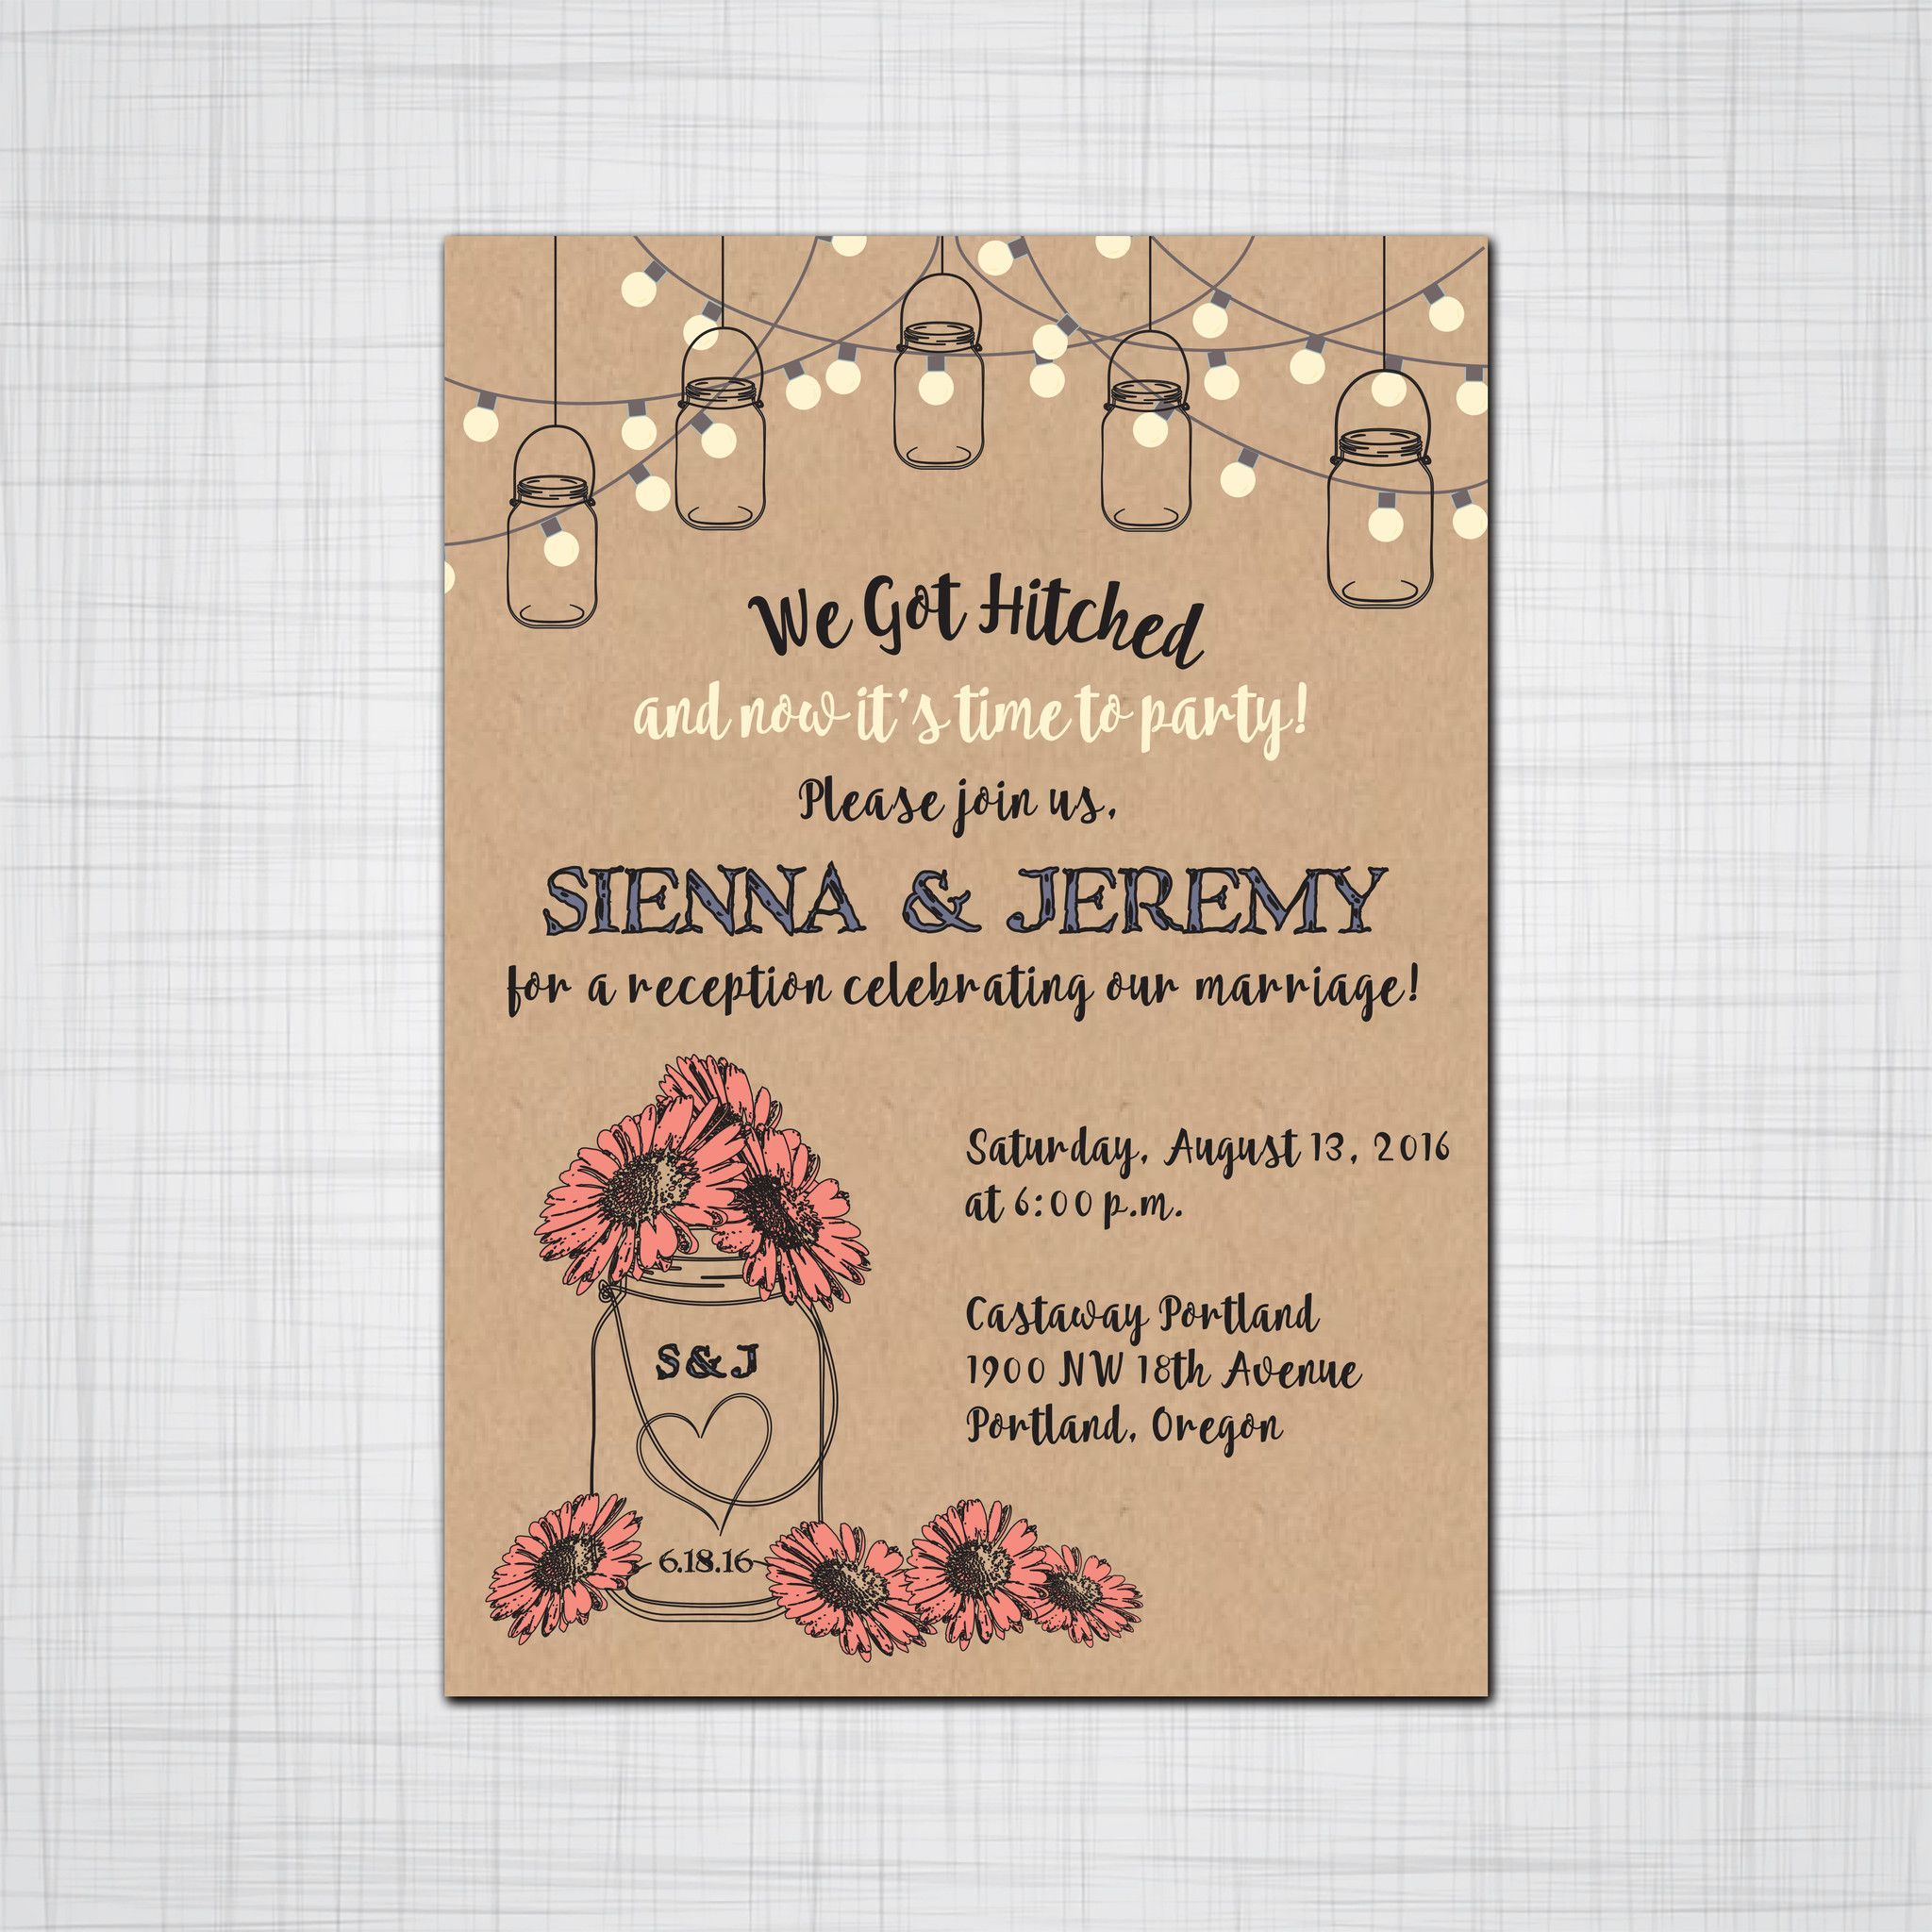 Customize This Fun Rustic Mason Jar With Daisies For An After The Wedding Invitation Set To